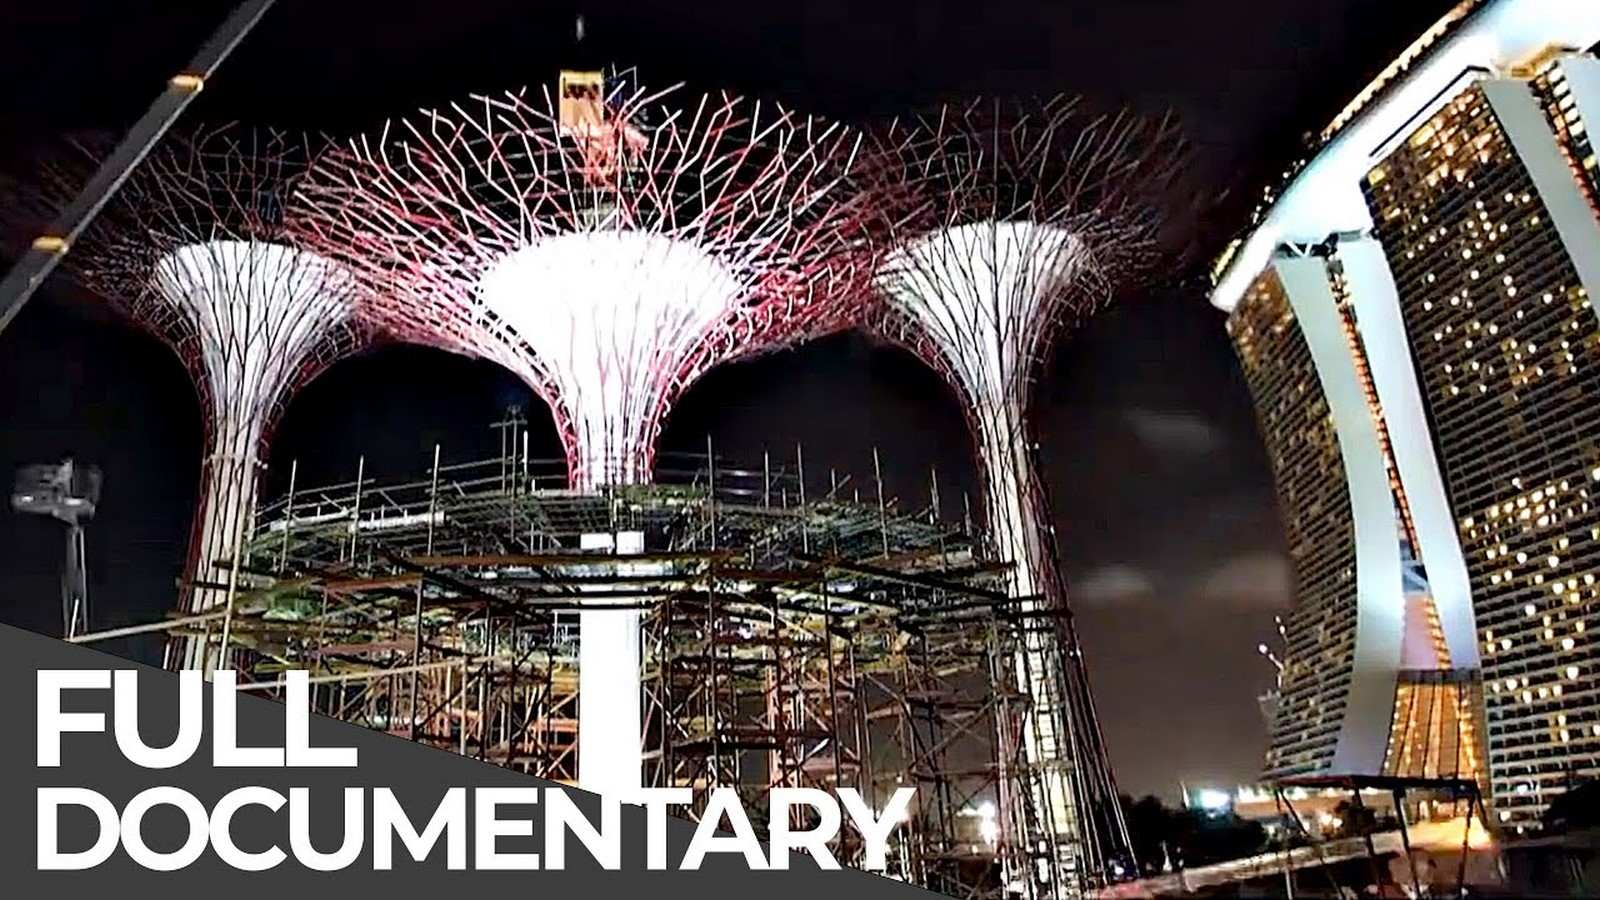 Youtube for Architects: World's Most Unique Garden: Gardens by the Bay | Megastructures | Free Documentary - Sheet1